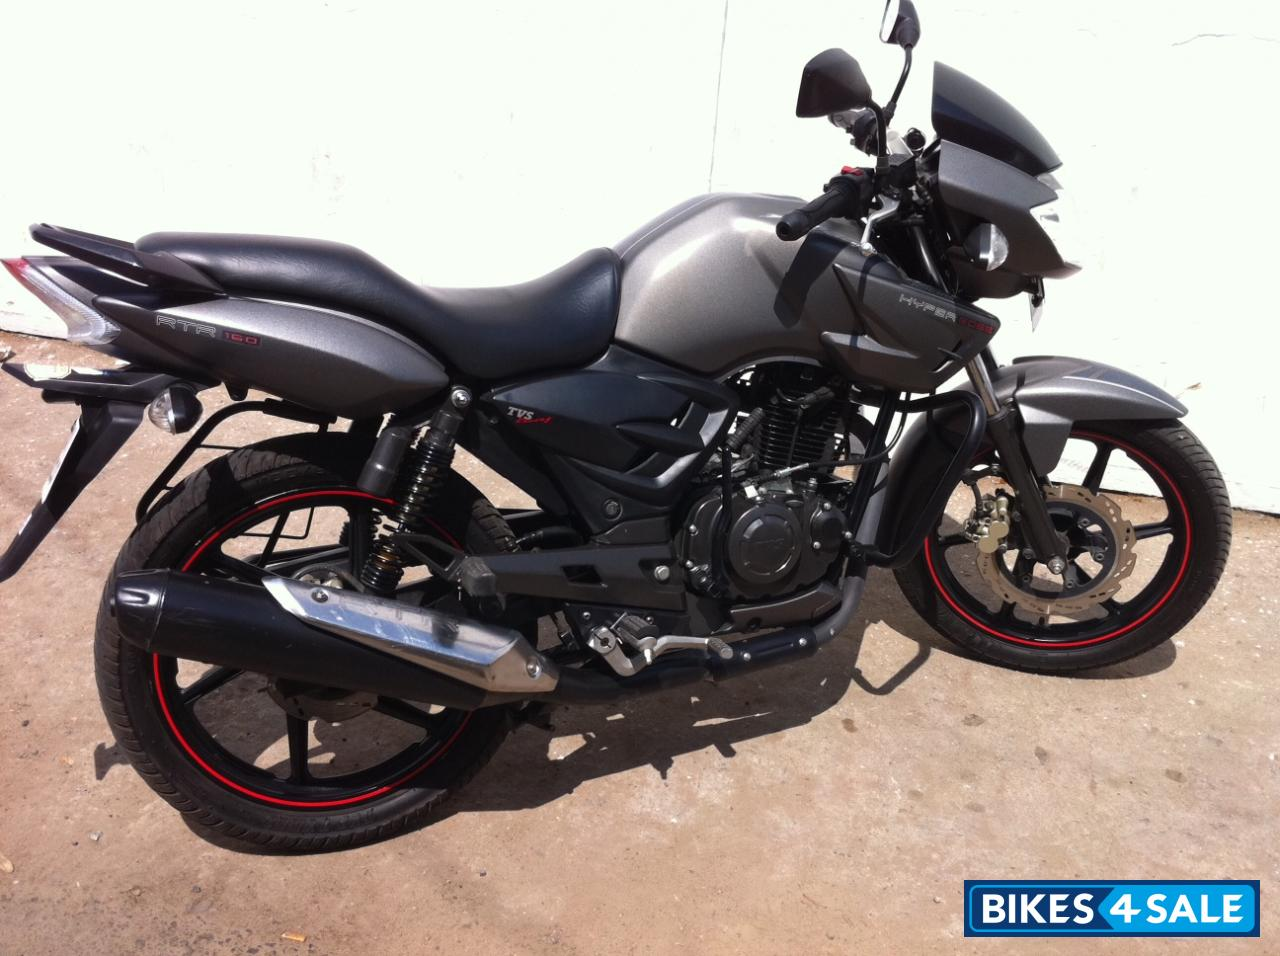 Car Picker Tvs Apache Rtr 160